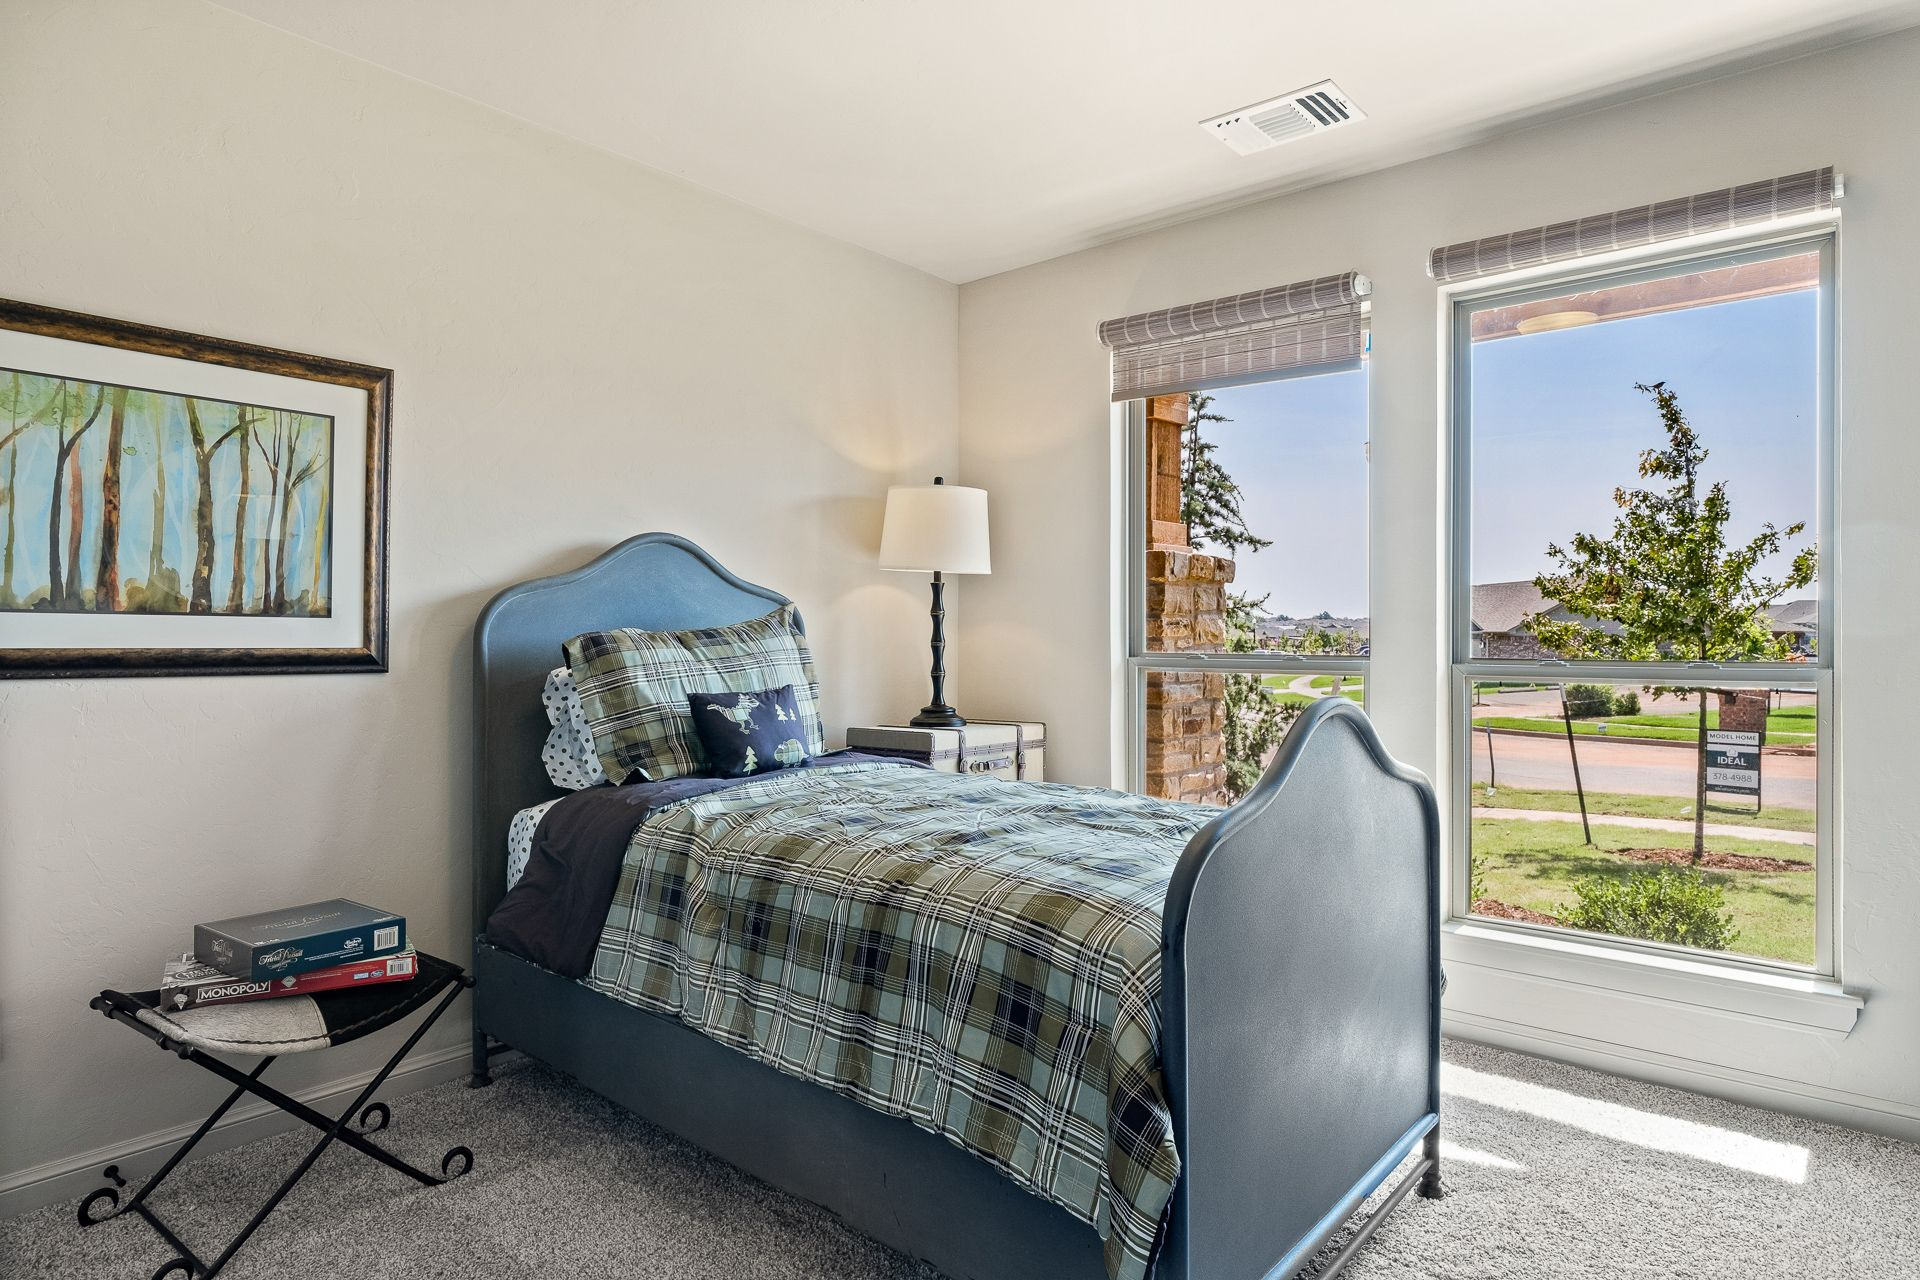 Bedroom featured in the Inwood By Ideal Homes in Oklahoma City, OK